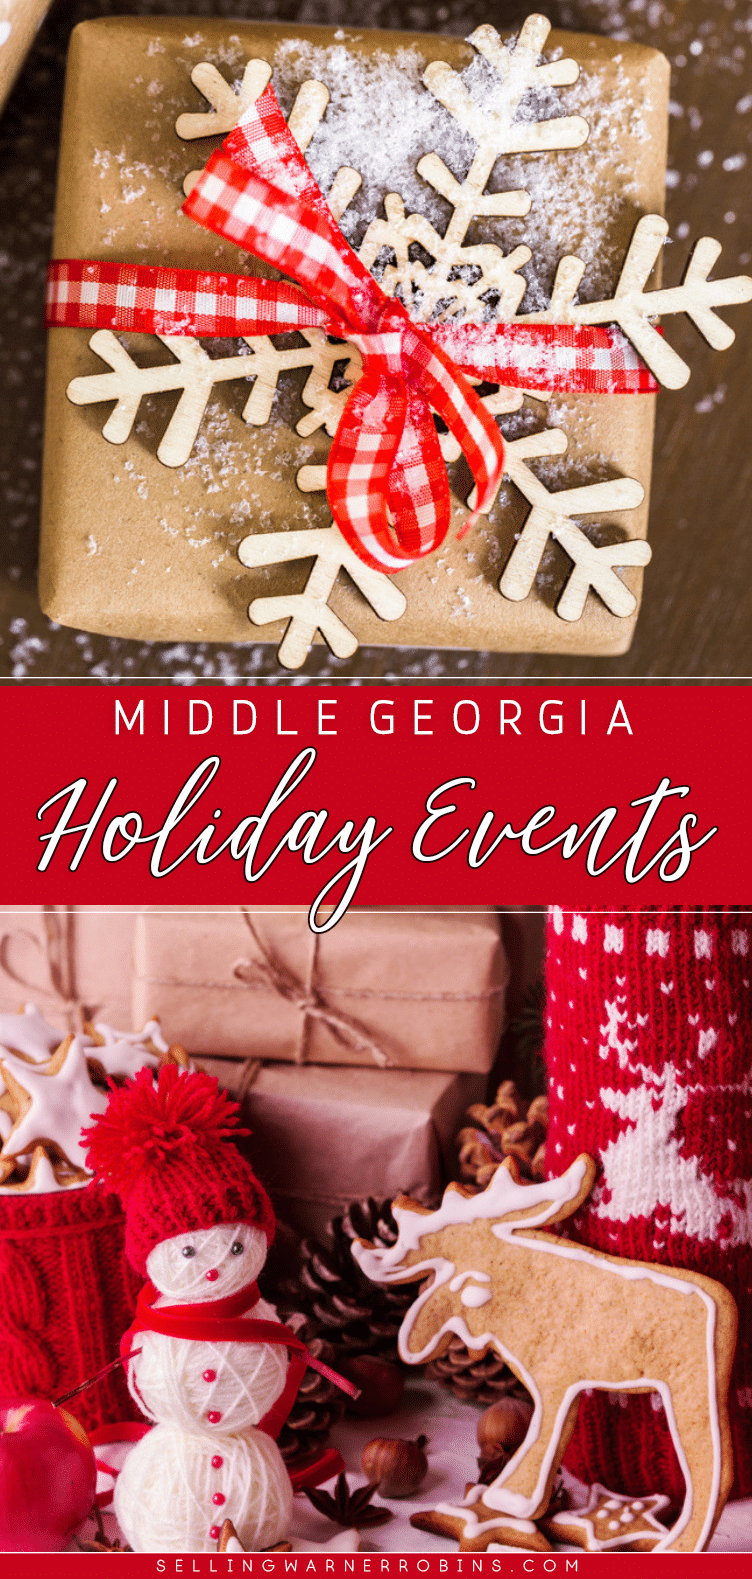 Middle Georgia Holiday Events